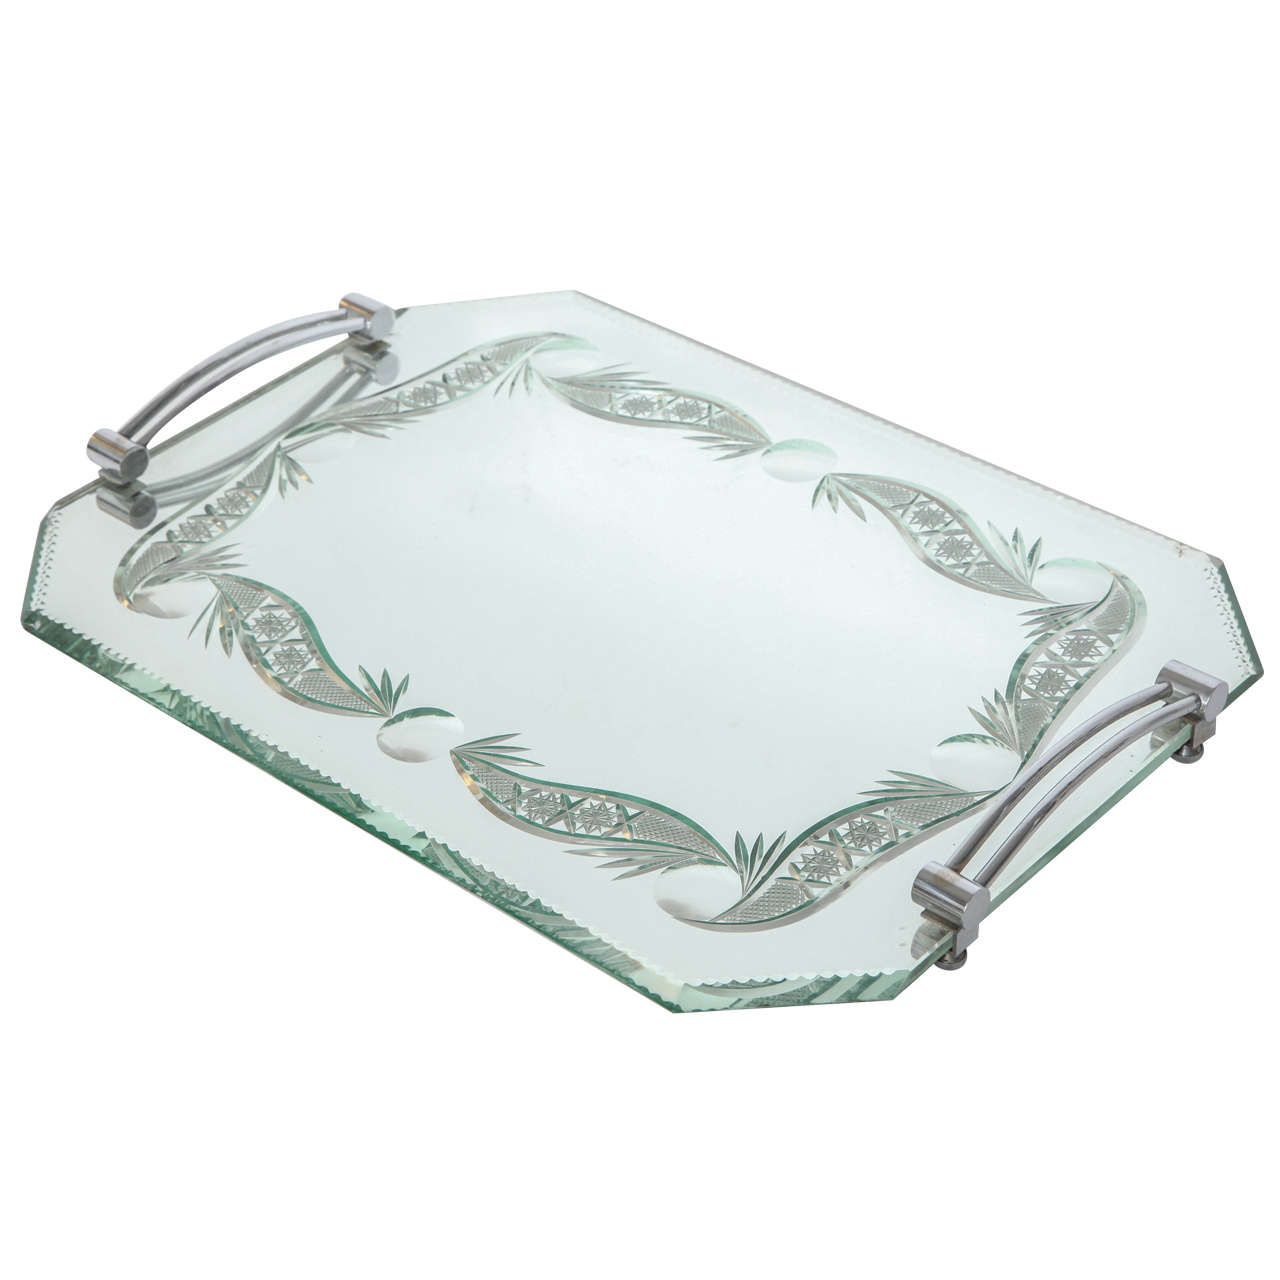 French mirrored vanity tray at 1stdibs for Mirrored bathroom tray